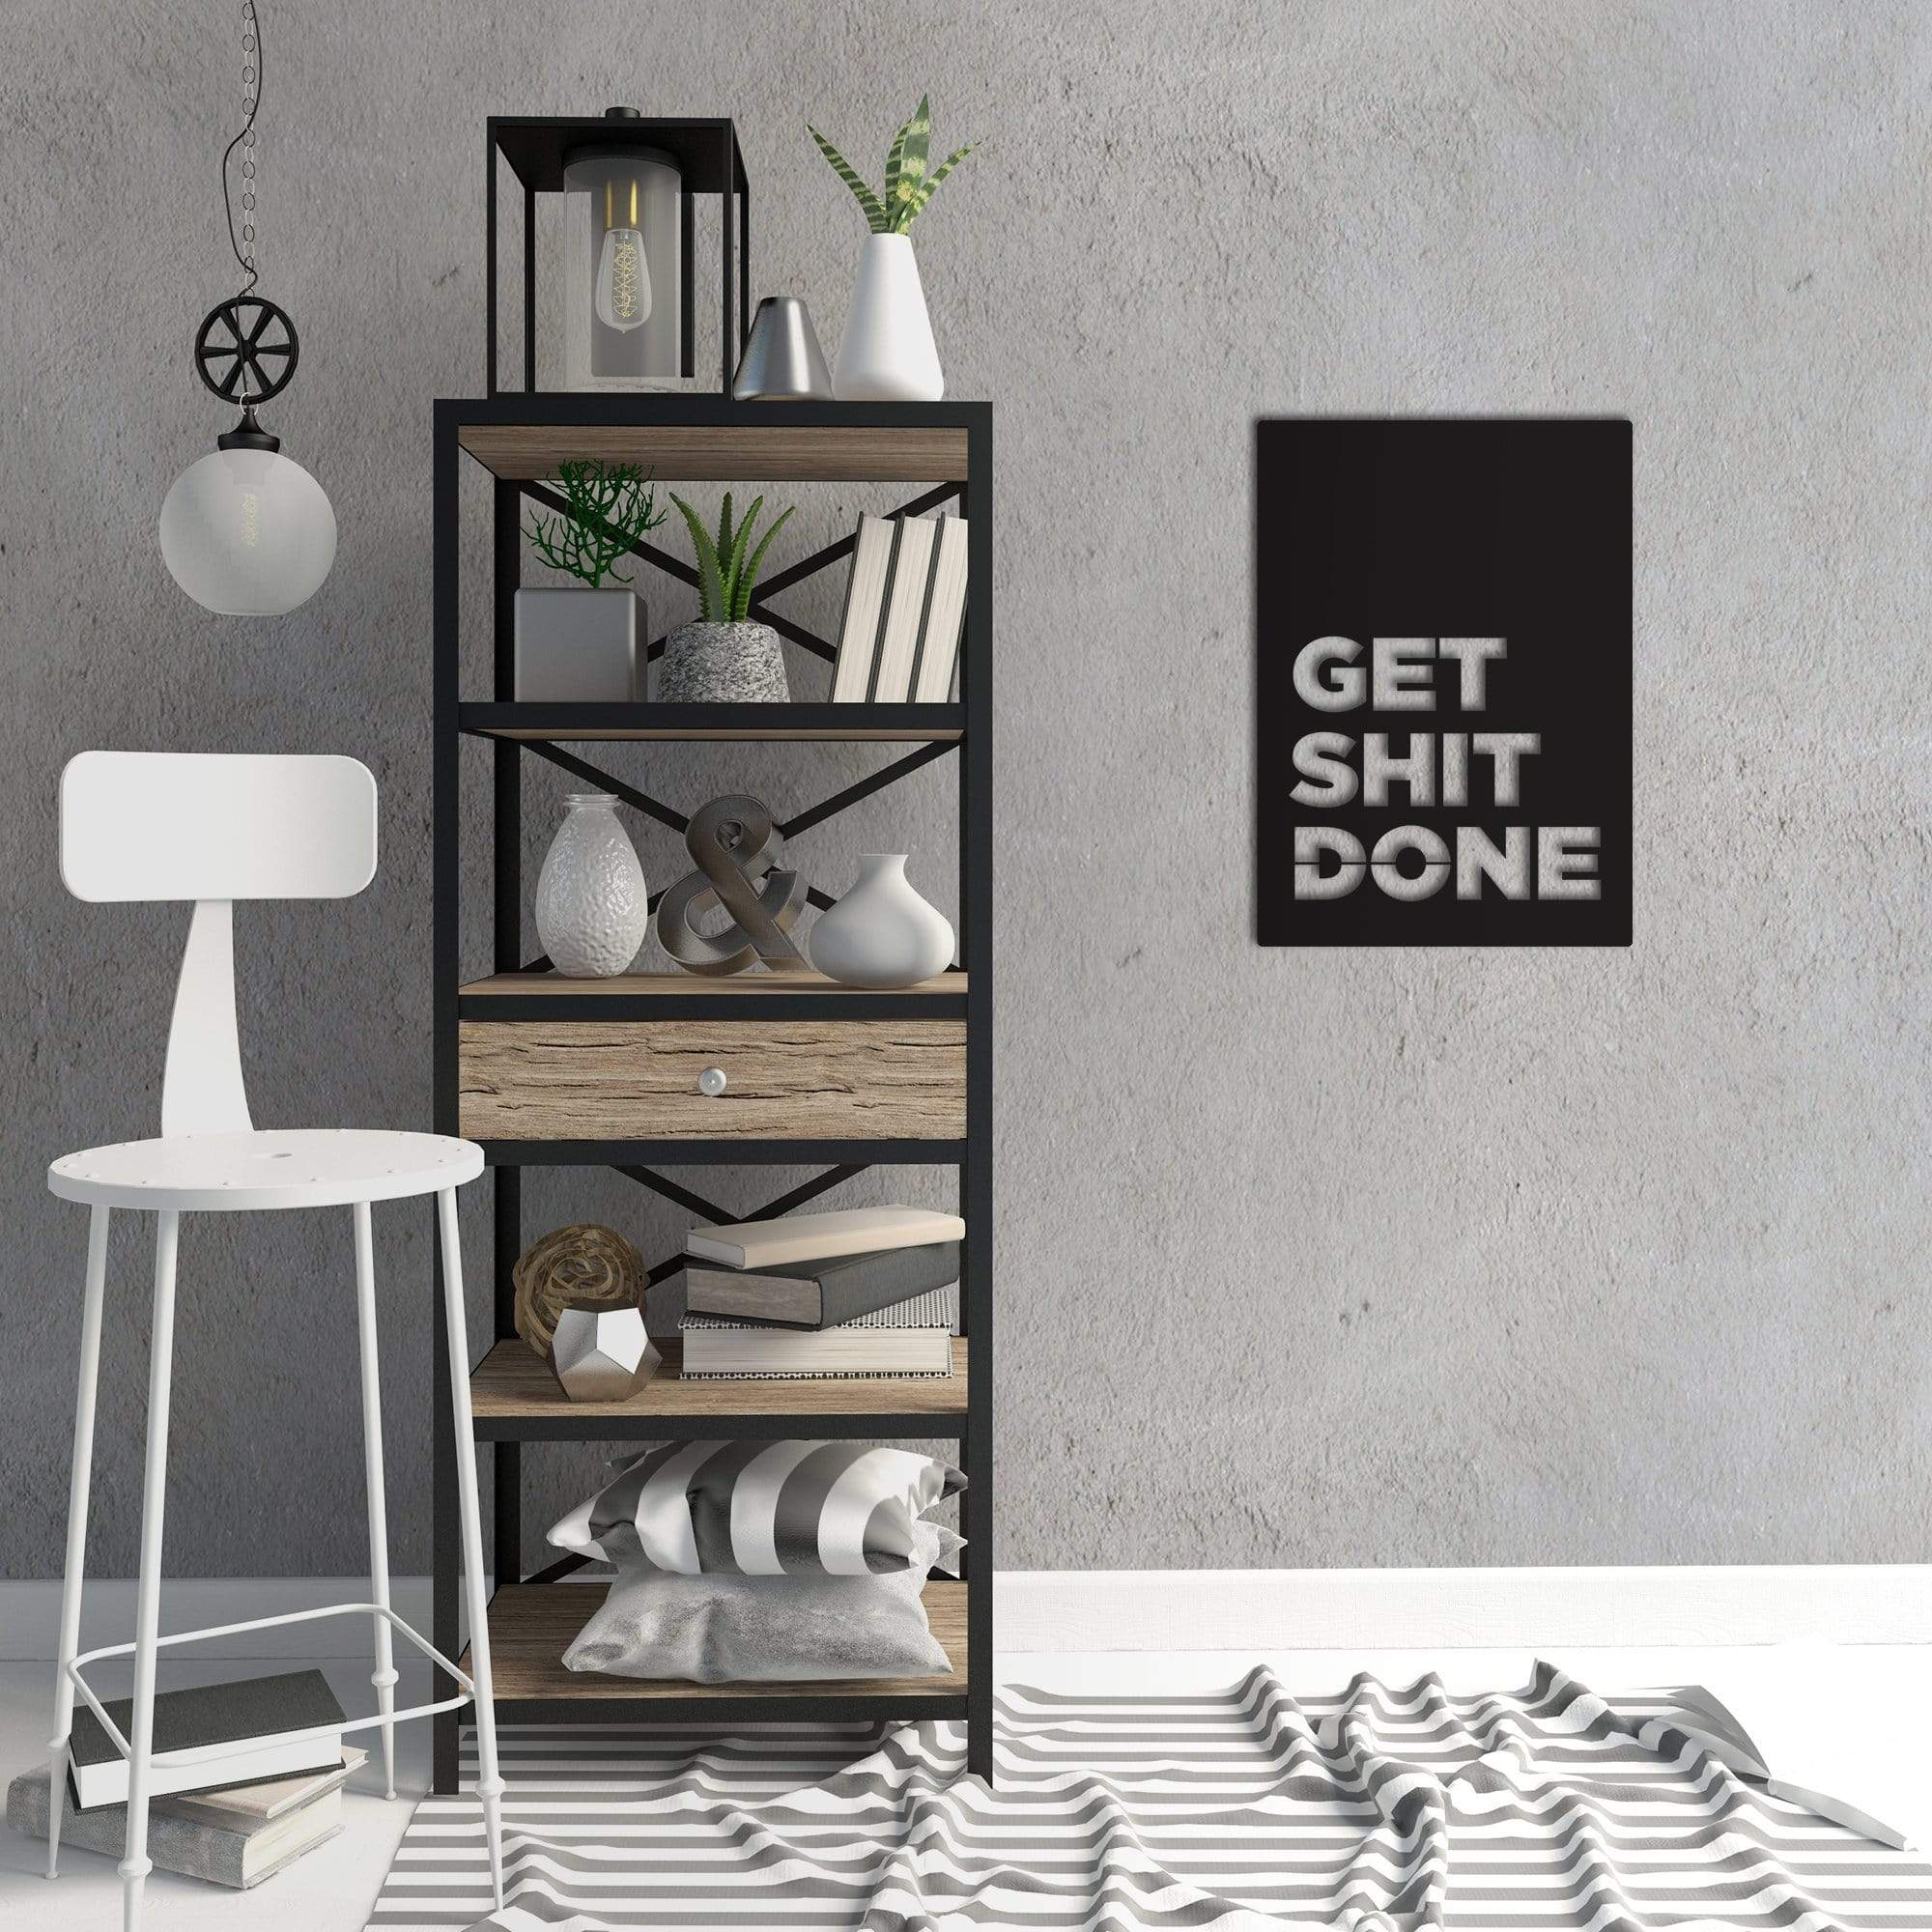 Get Shit Done - Metal Wall Art